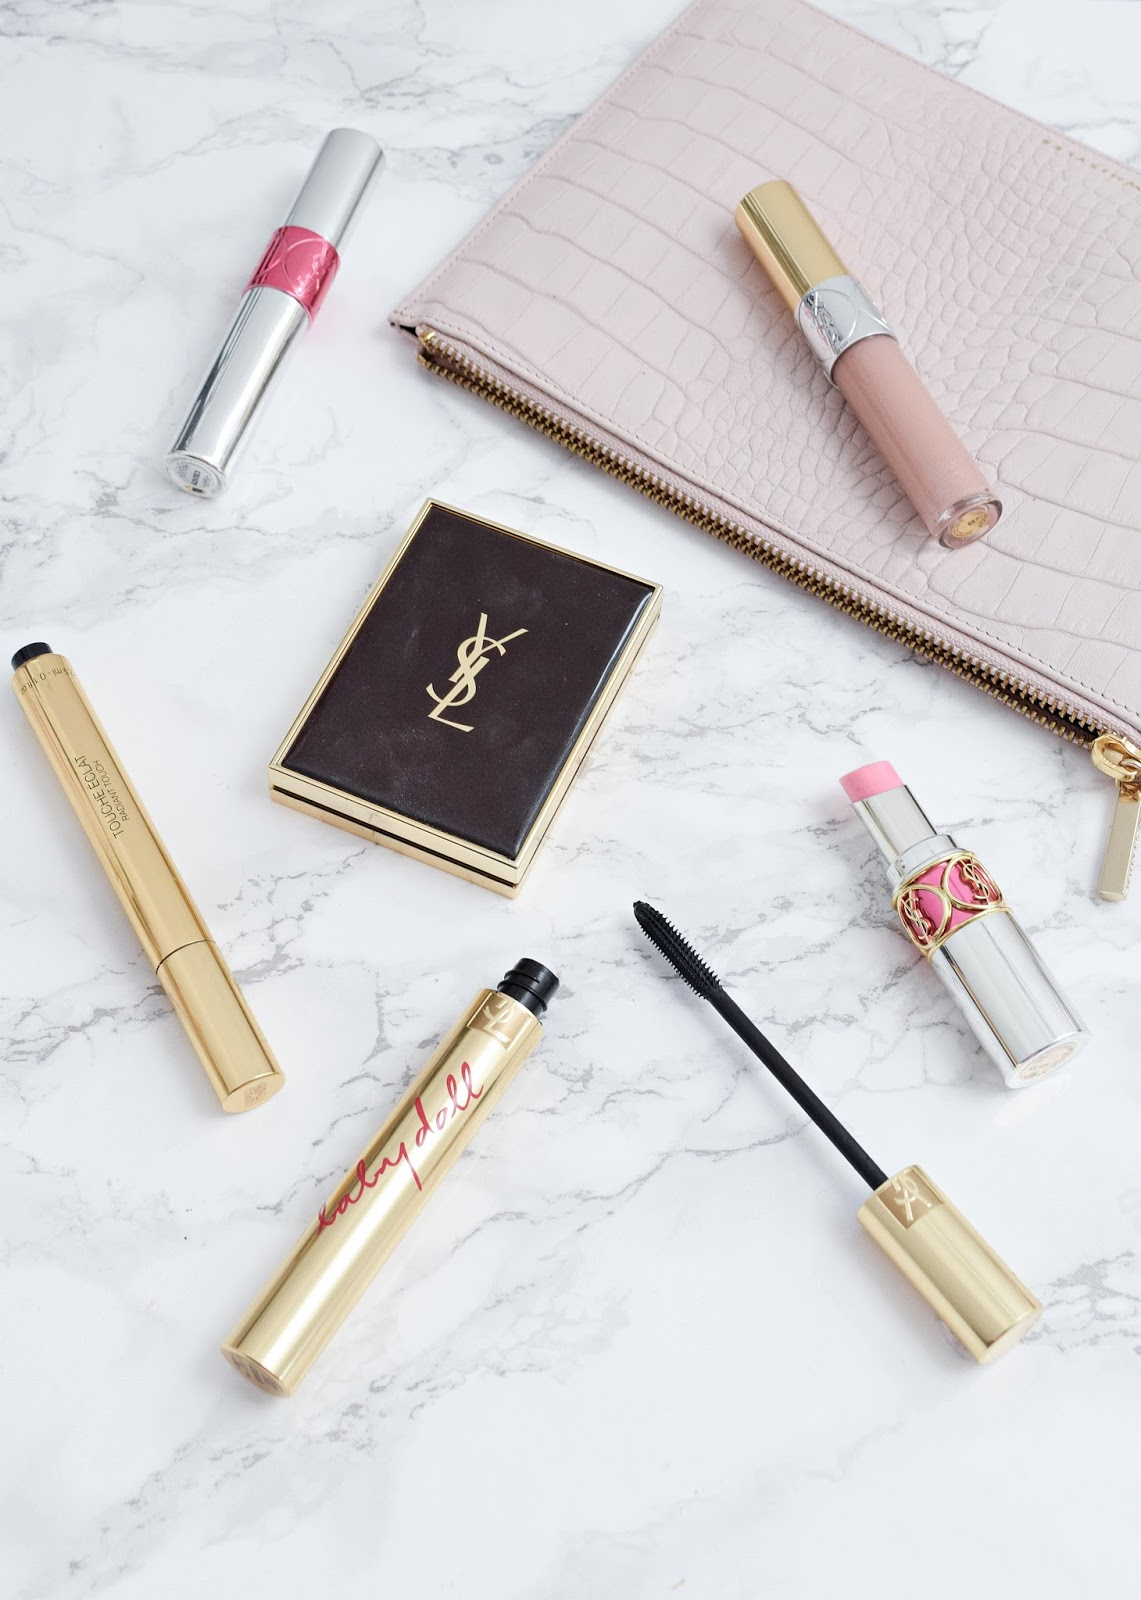 best ysl makeup products, ysl touche eclat, baby doll mascara, ysl bronzer